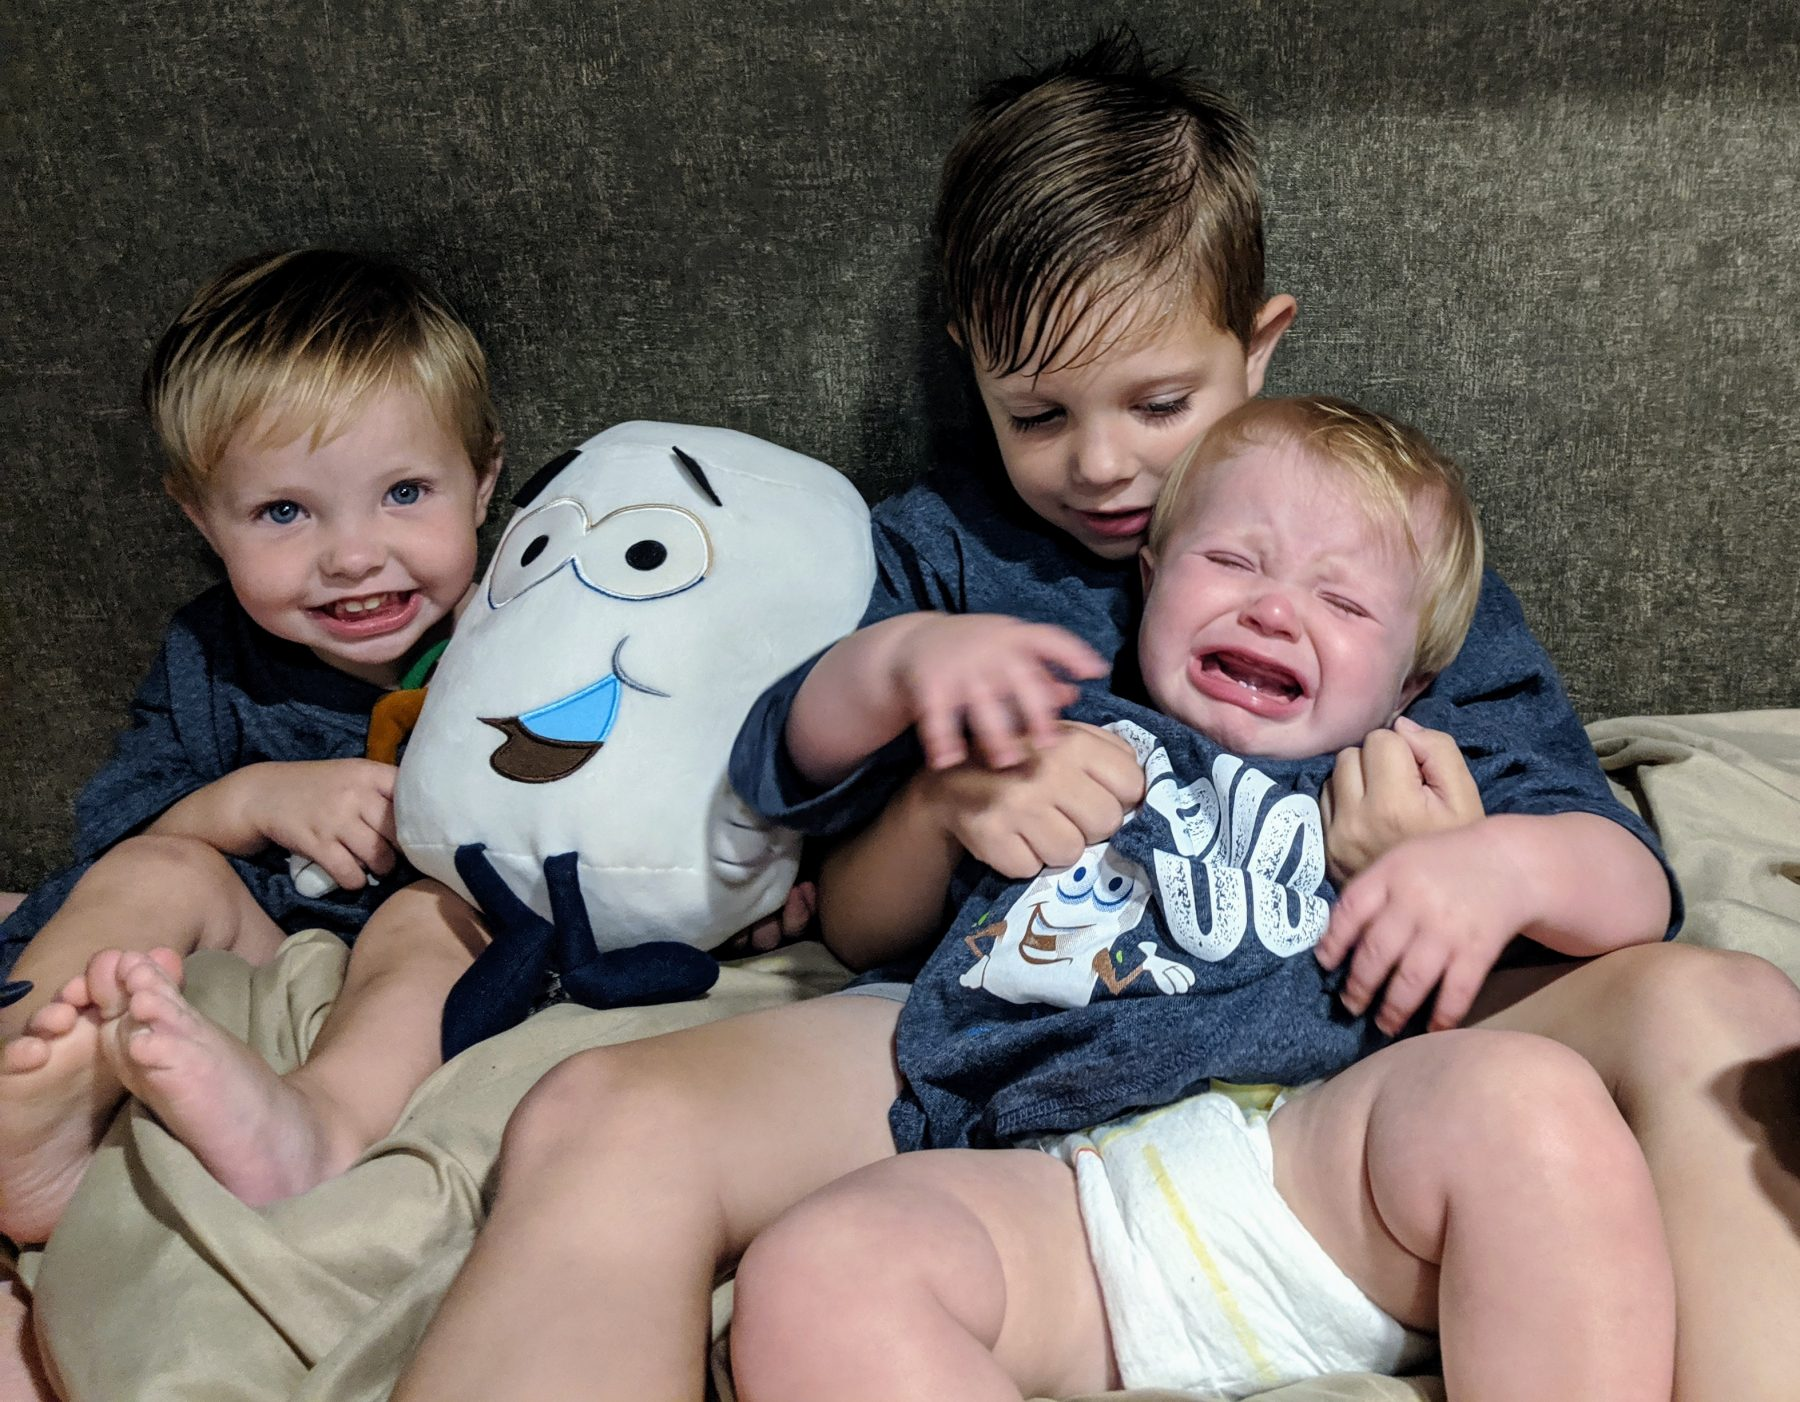 Young kids holding crying baby